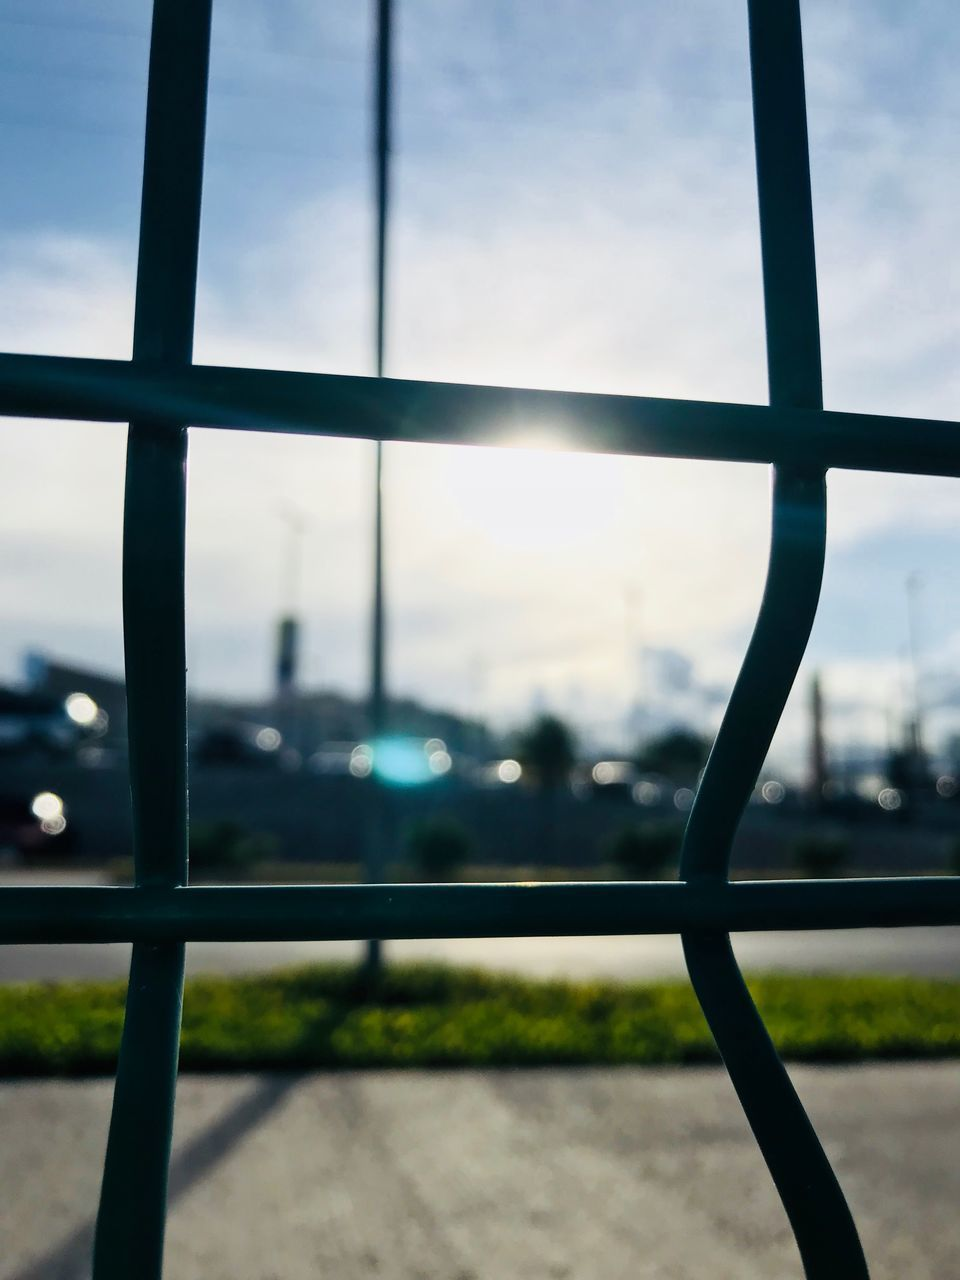 sky, fence, barrier, focus on foreground, no people, boundary, metal, day, nature, safety, close-up, security, transportation, window, outdoors, cloud - sky, protection, airport, grid, railing